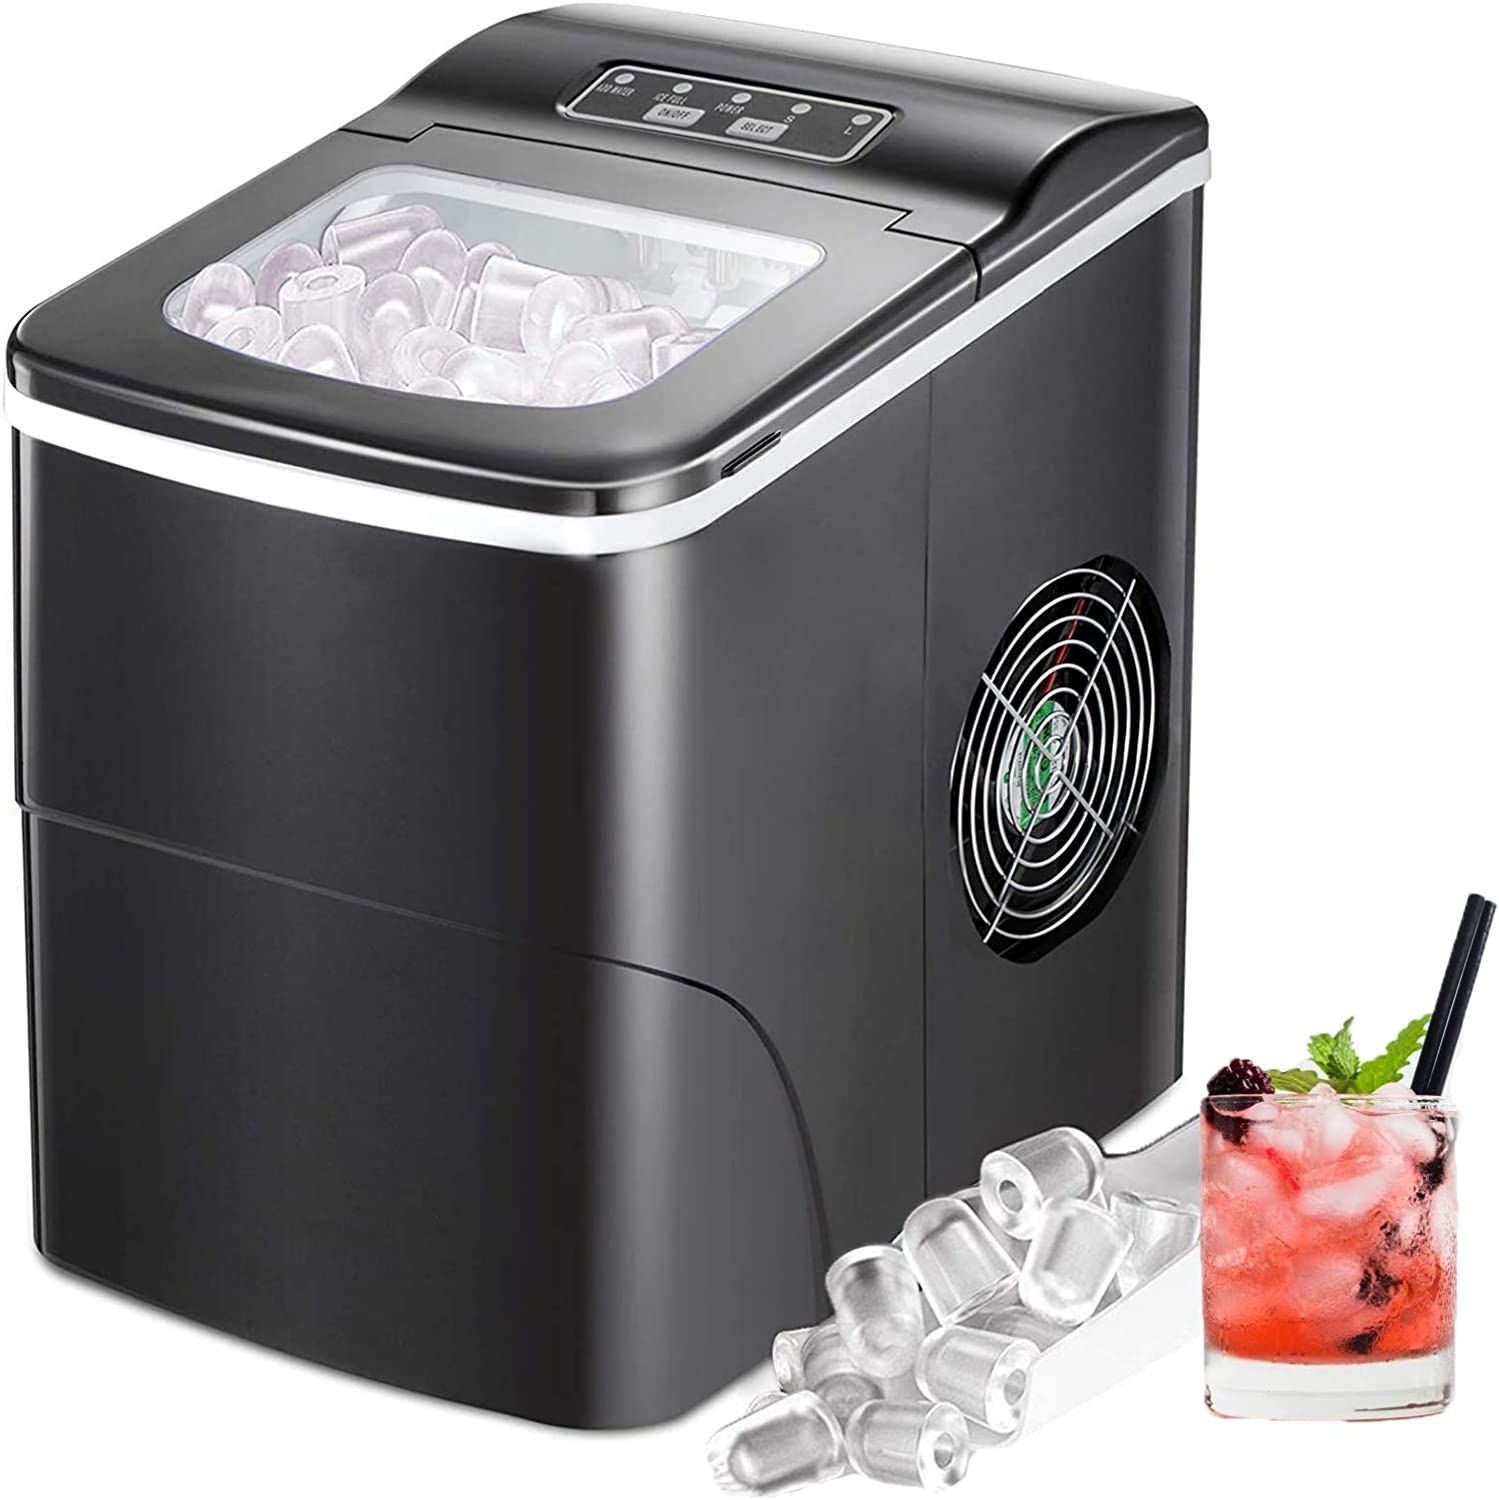 Electactic Ice Maker Machine for Countertop, 26Lbs/24H Portable Electric Ice Makers, Compact Ice Cube Maker with Ice Scoop and Basket 9 Cubes Ready in 6-8 Minutes,Ice Making Machine for Home(Black)